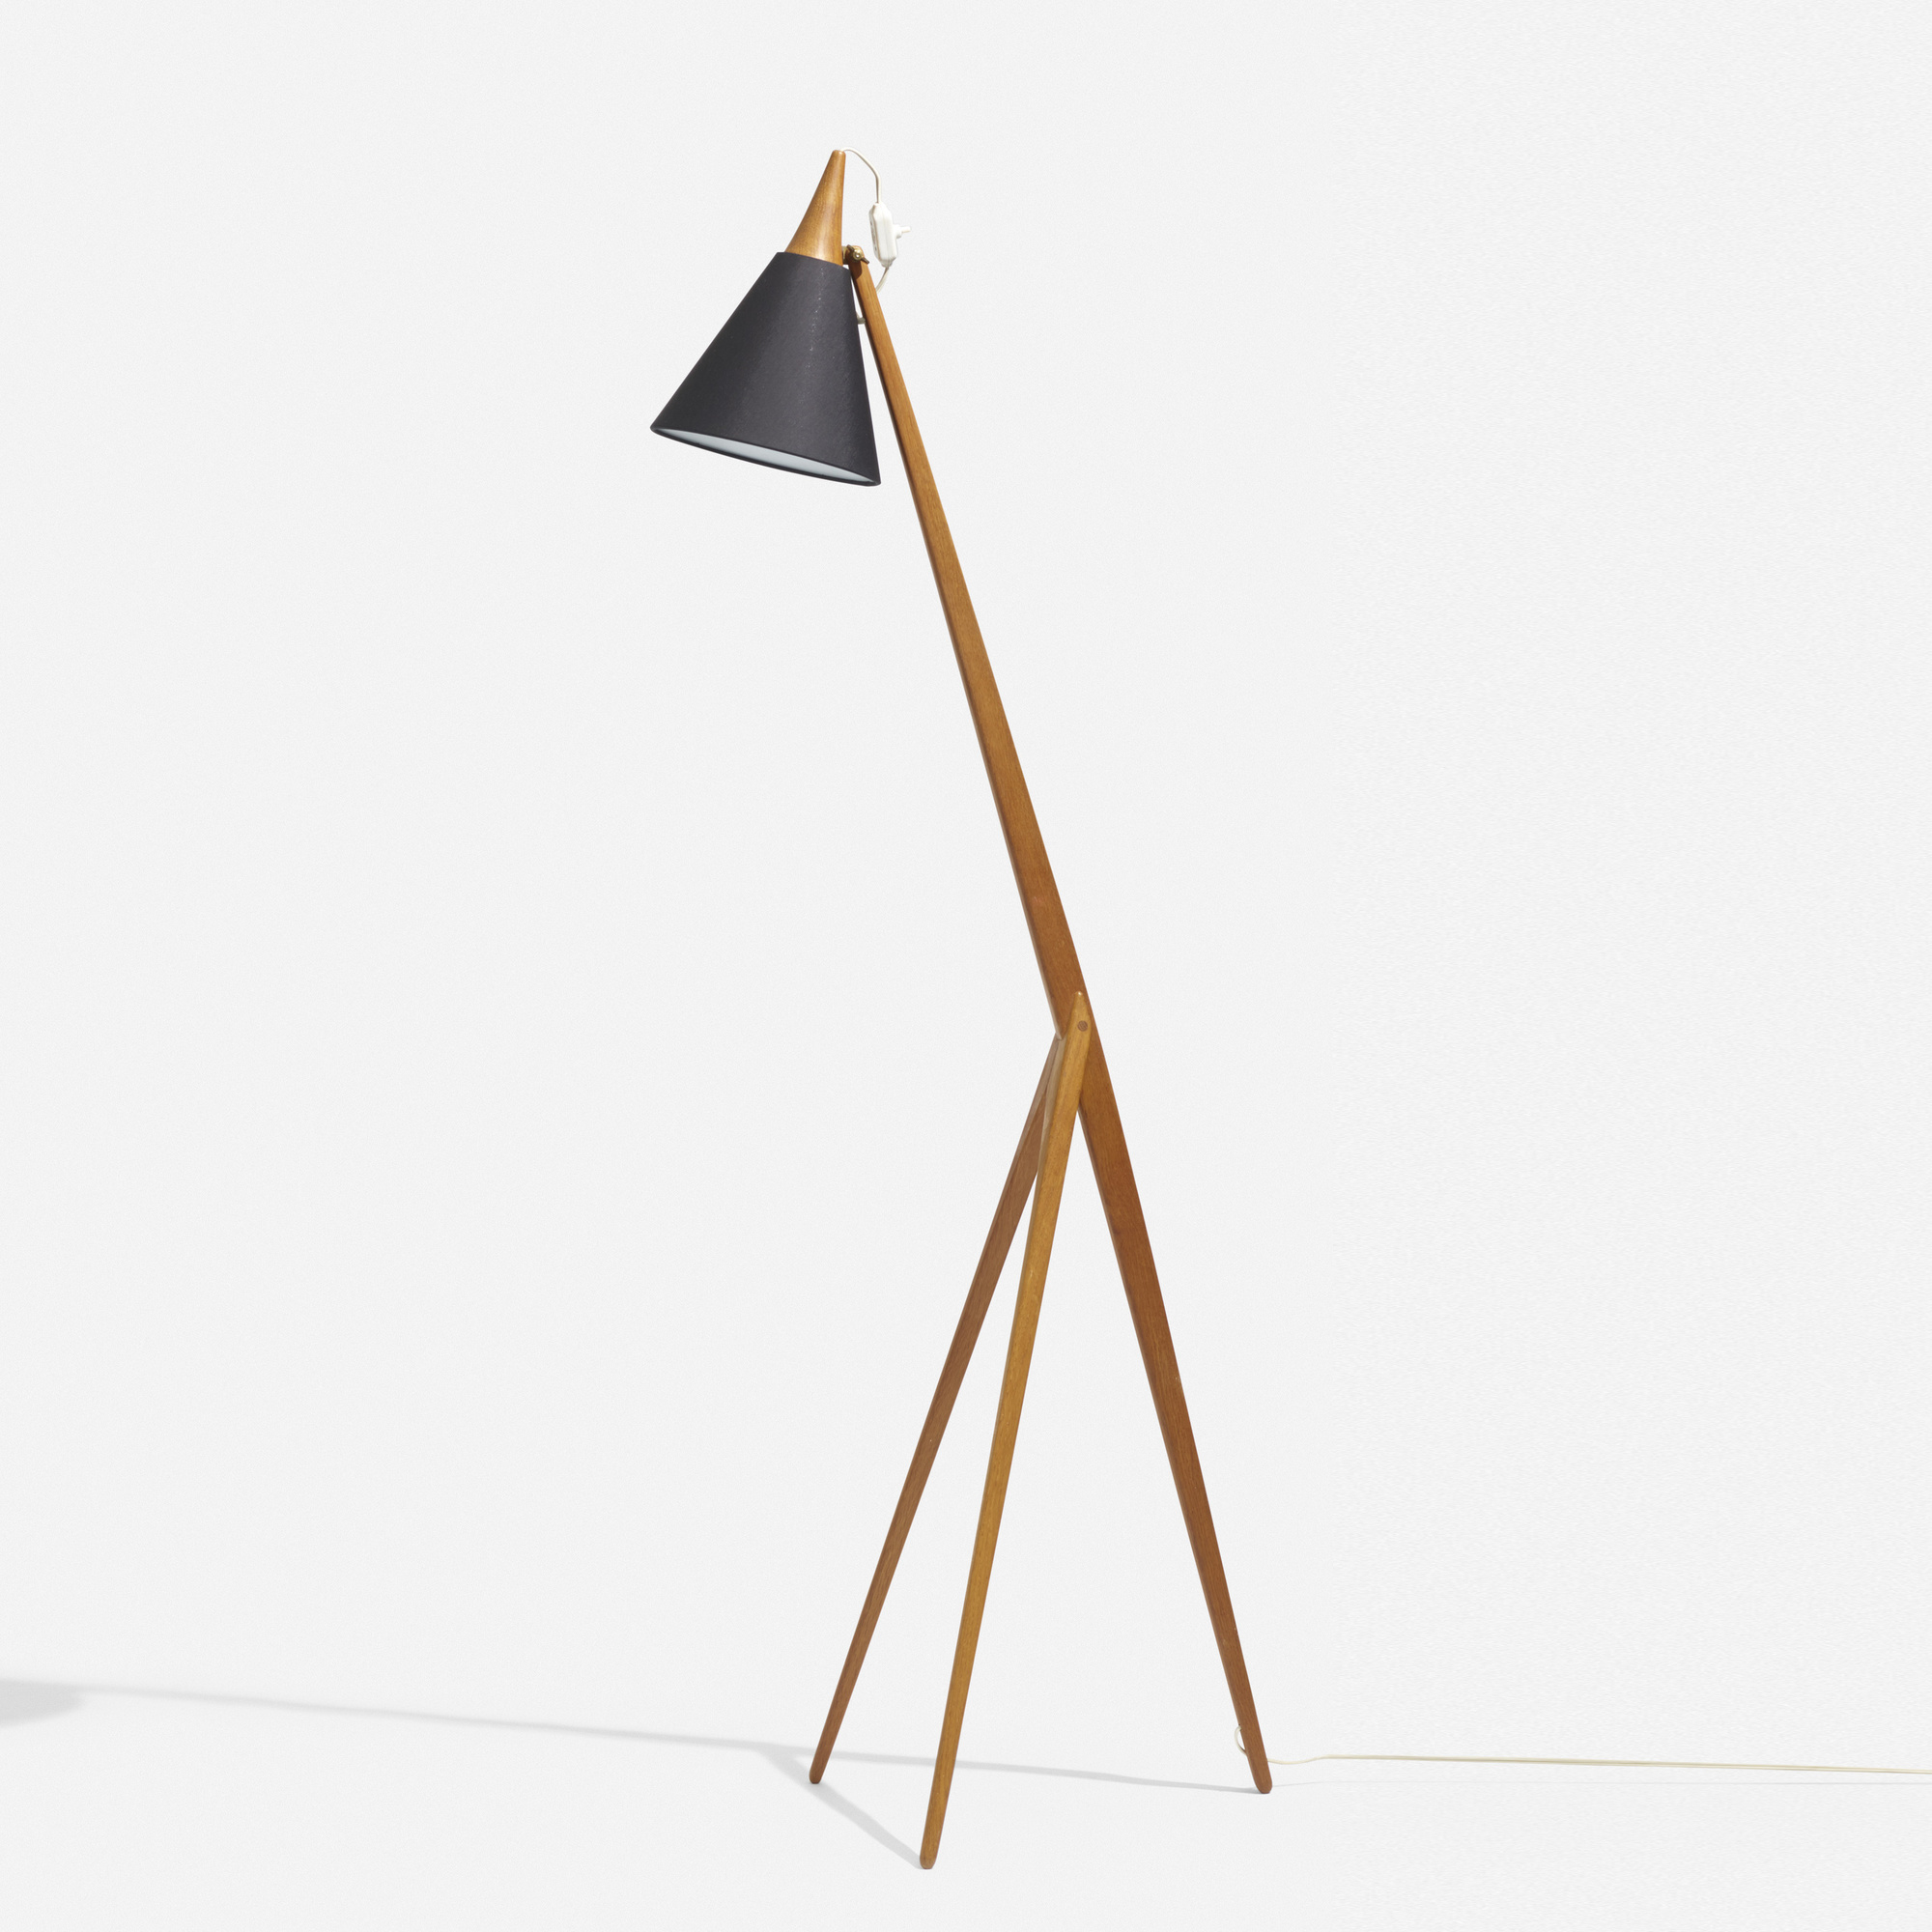 Scandinavian Design 18 May 2017 Östen Kristiansson Floor Lamp